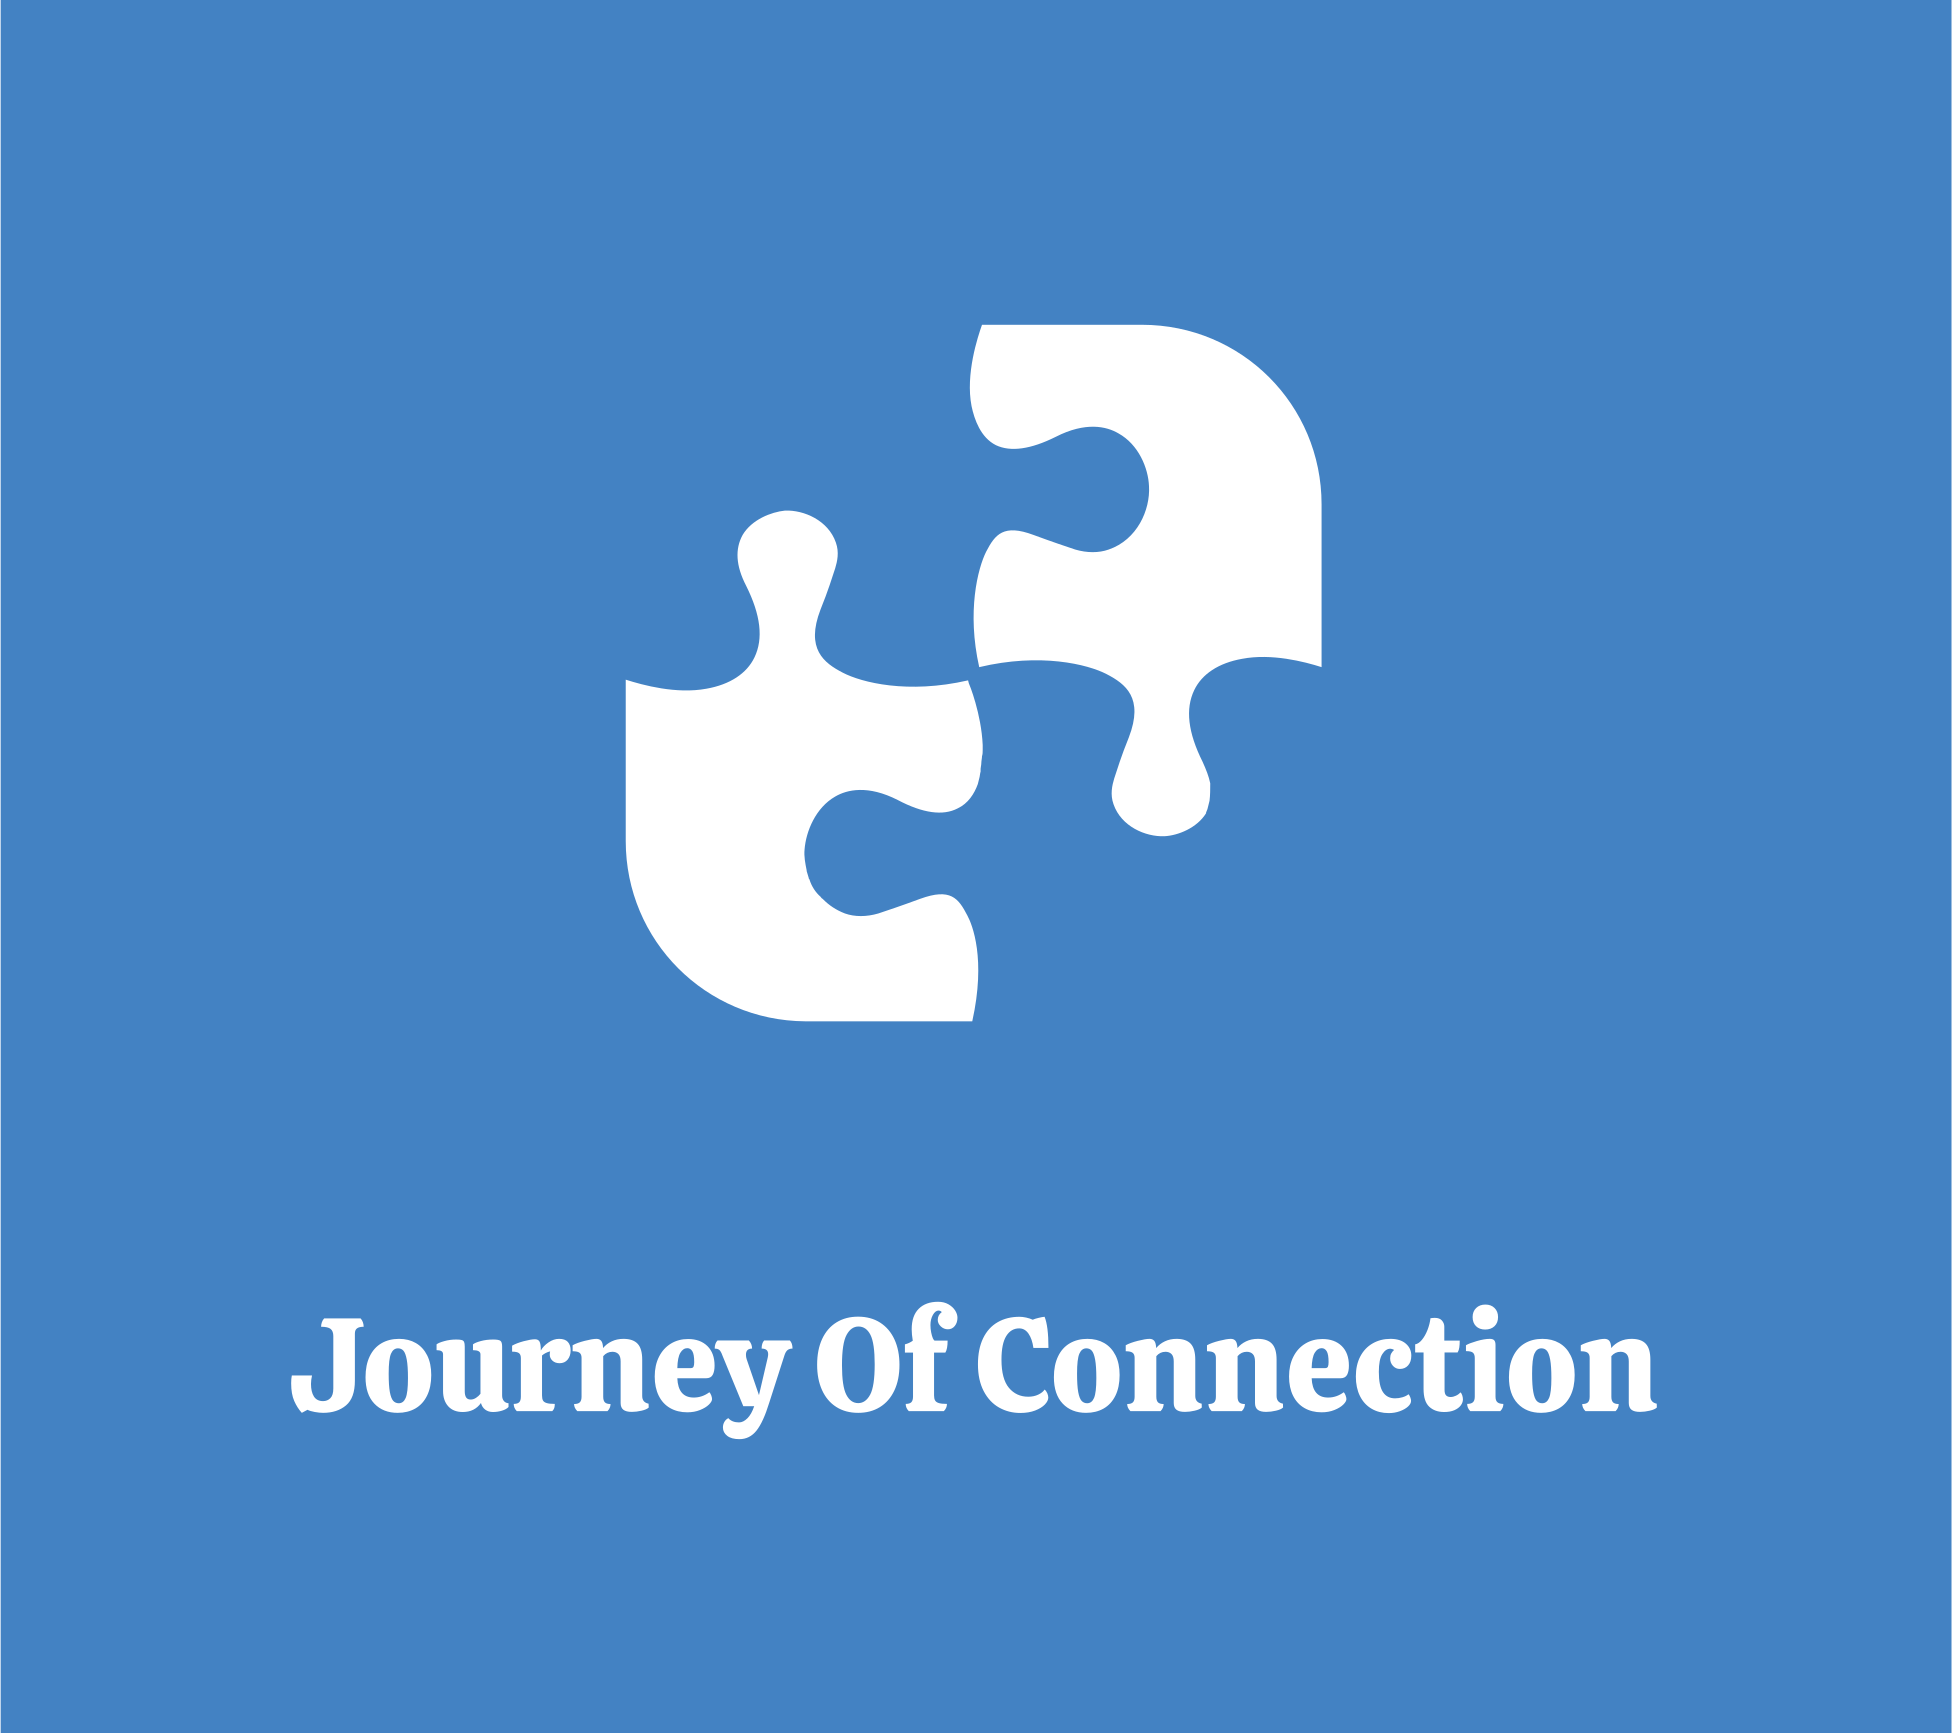 Journey of Connection